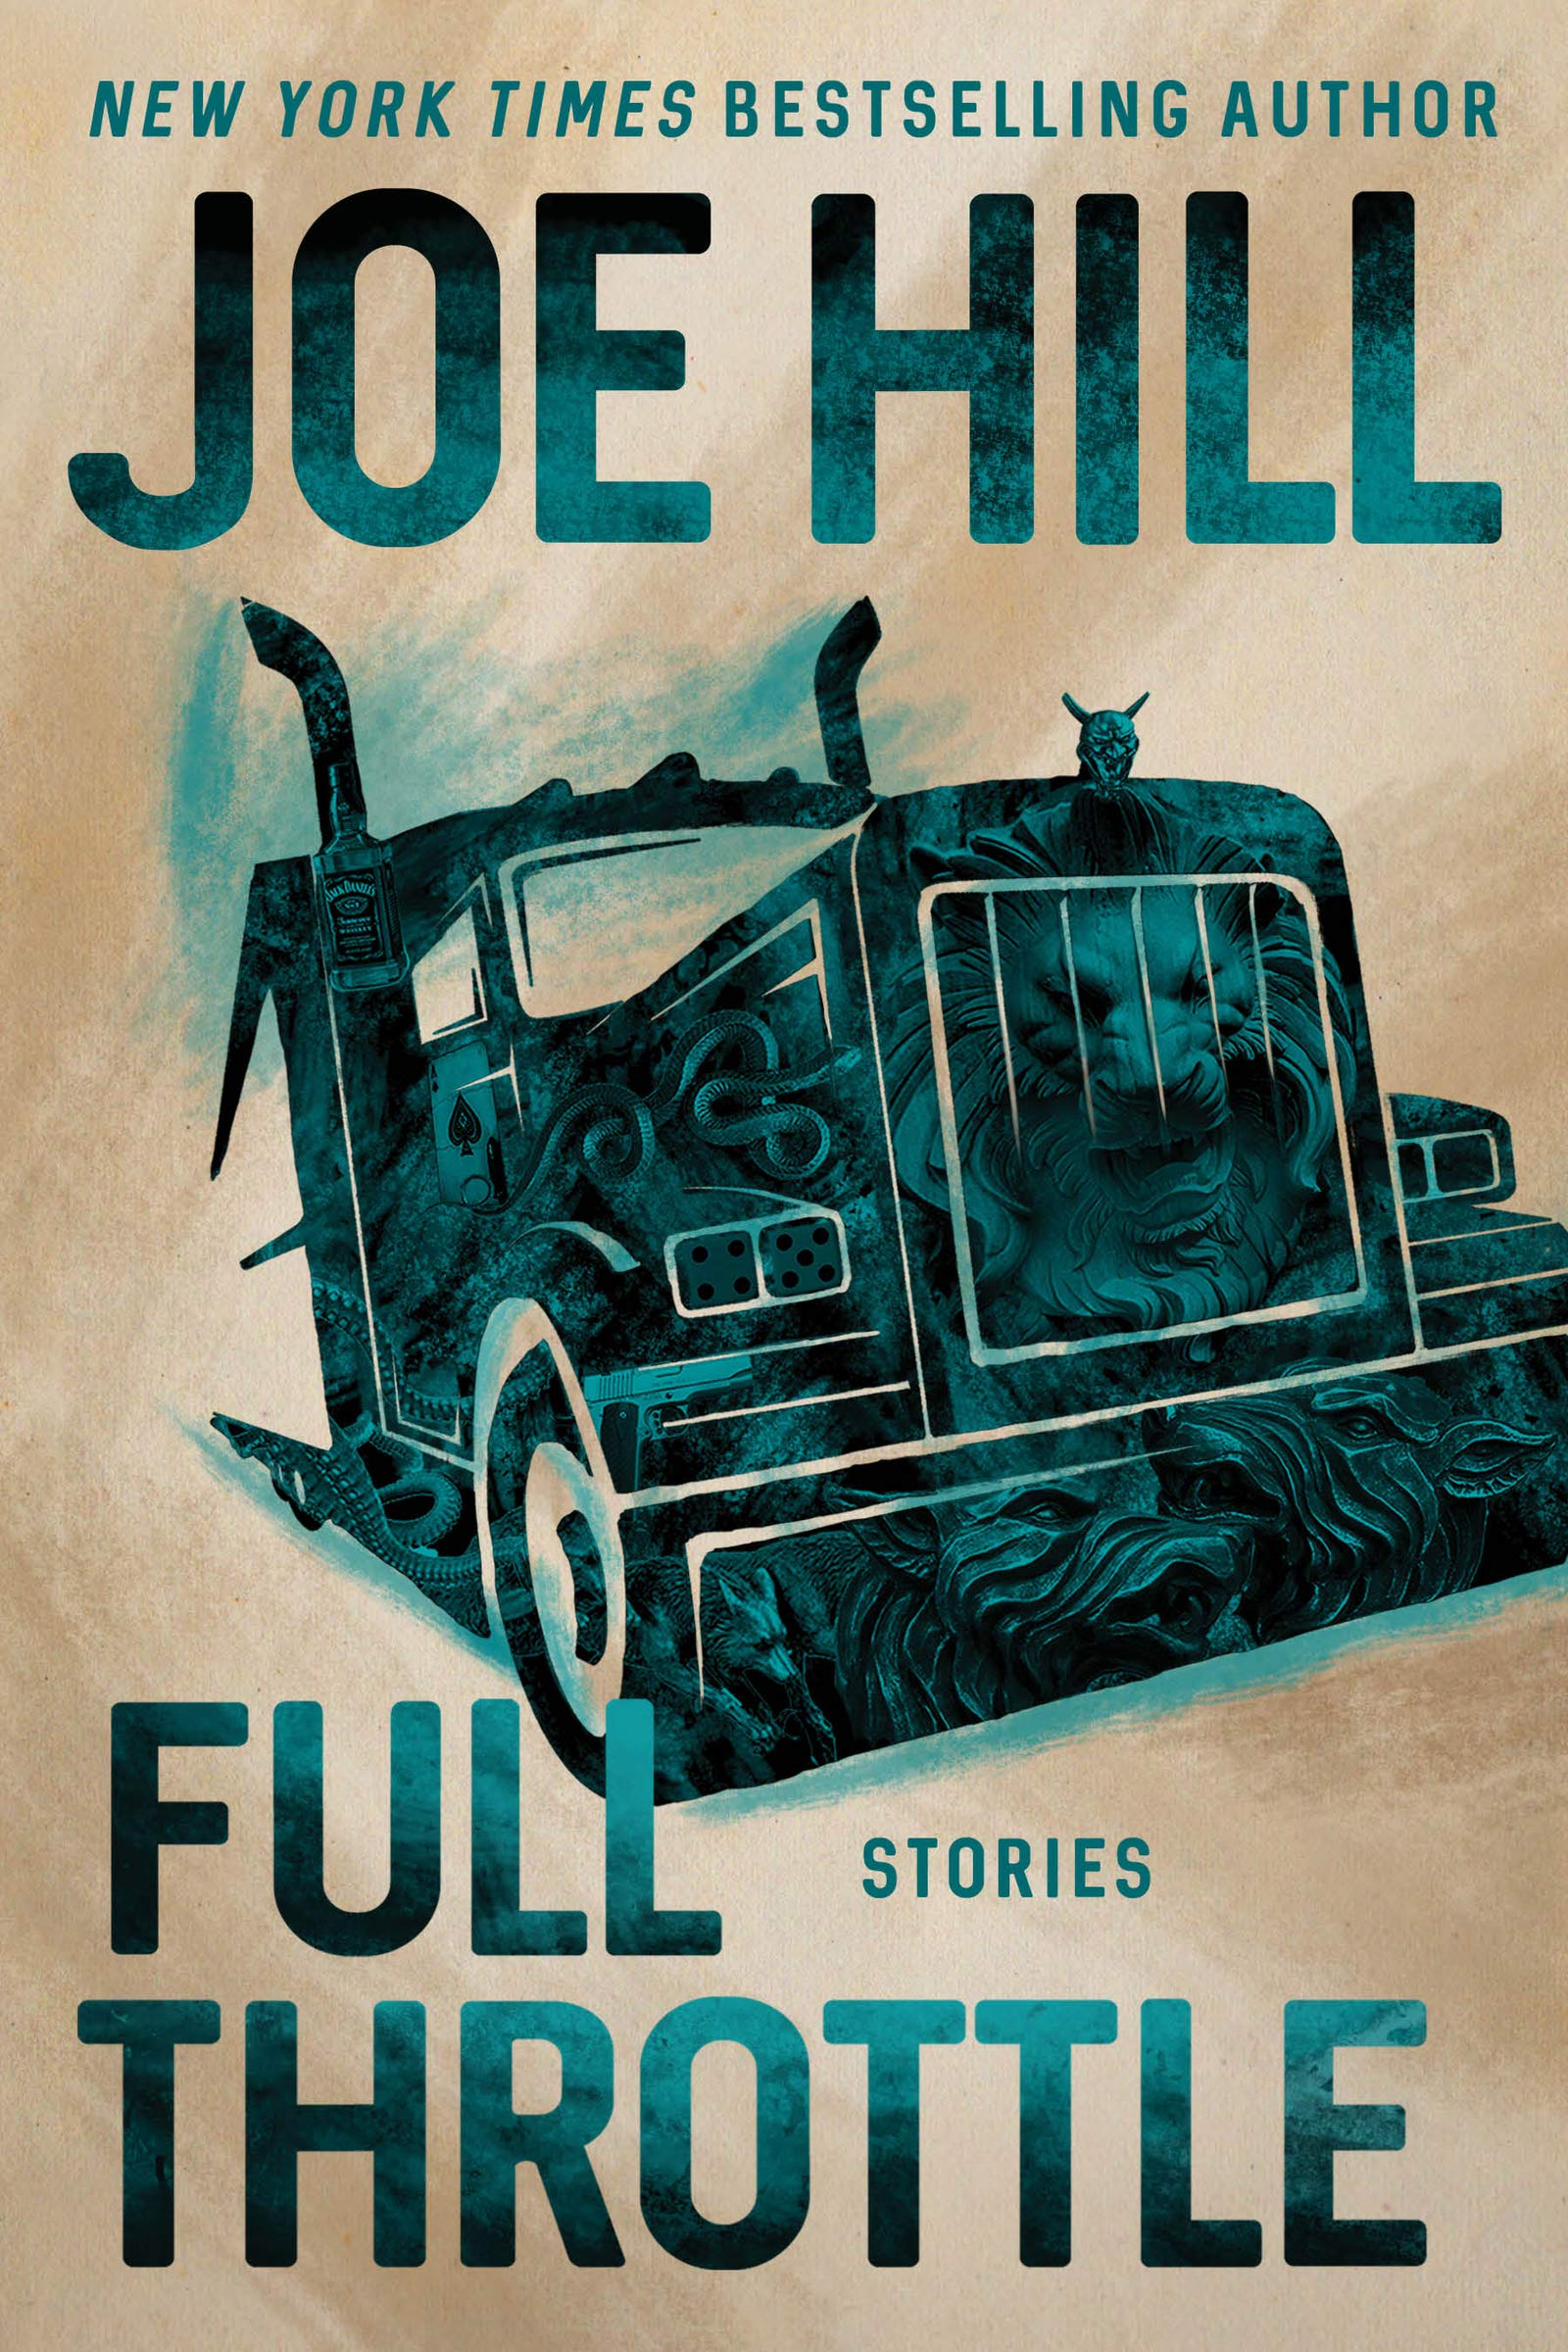 What Stories Will Appear In The Upcoming Joe Hill